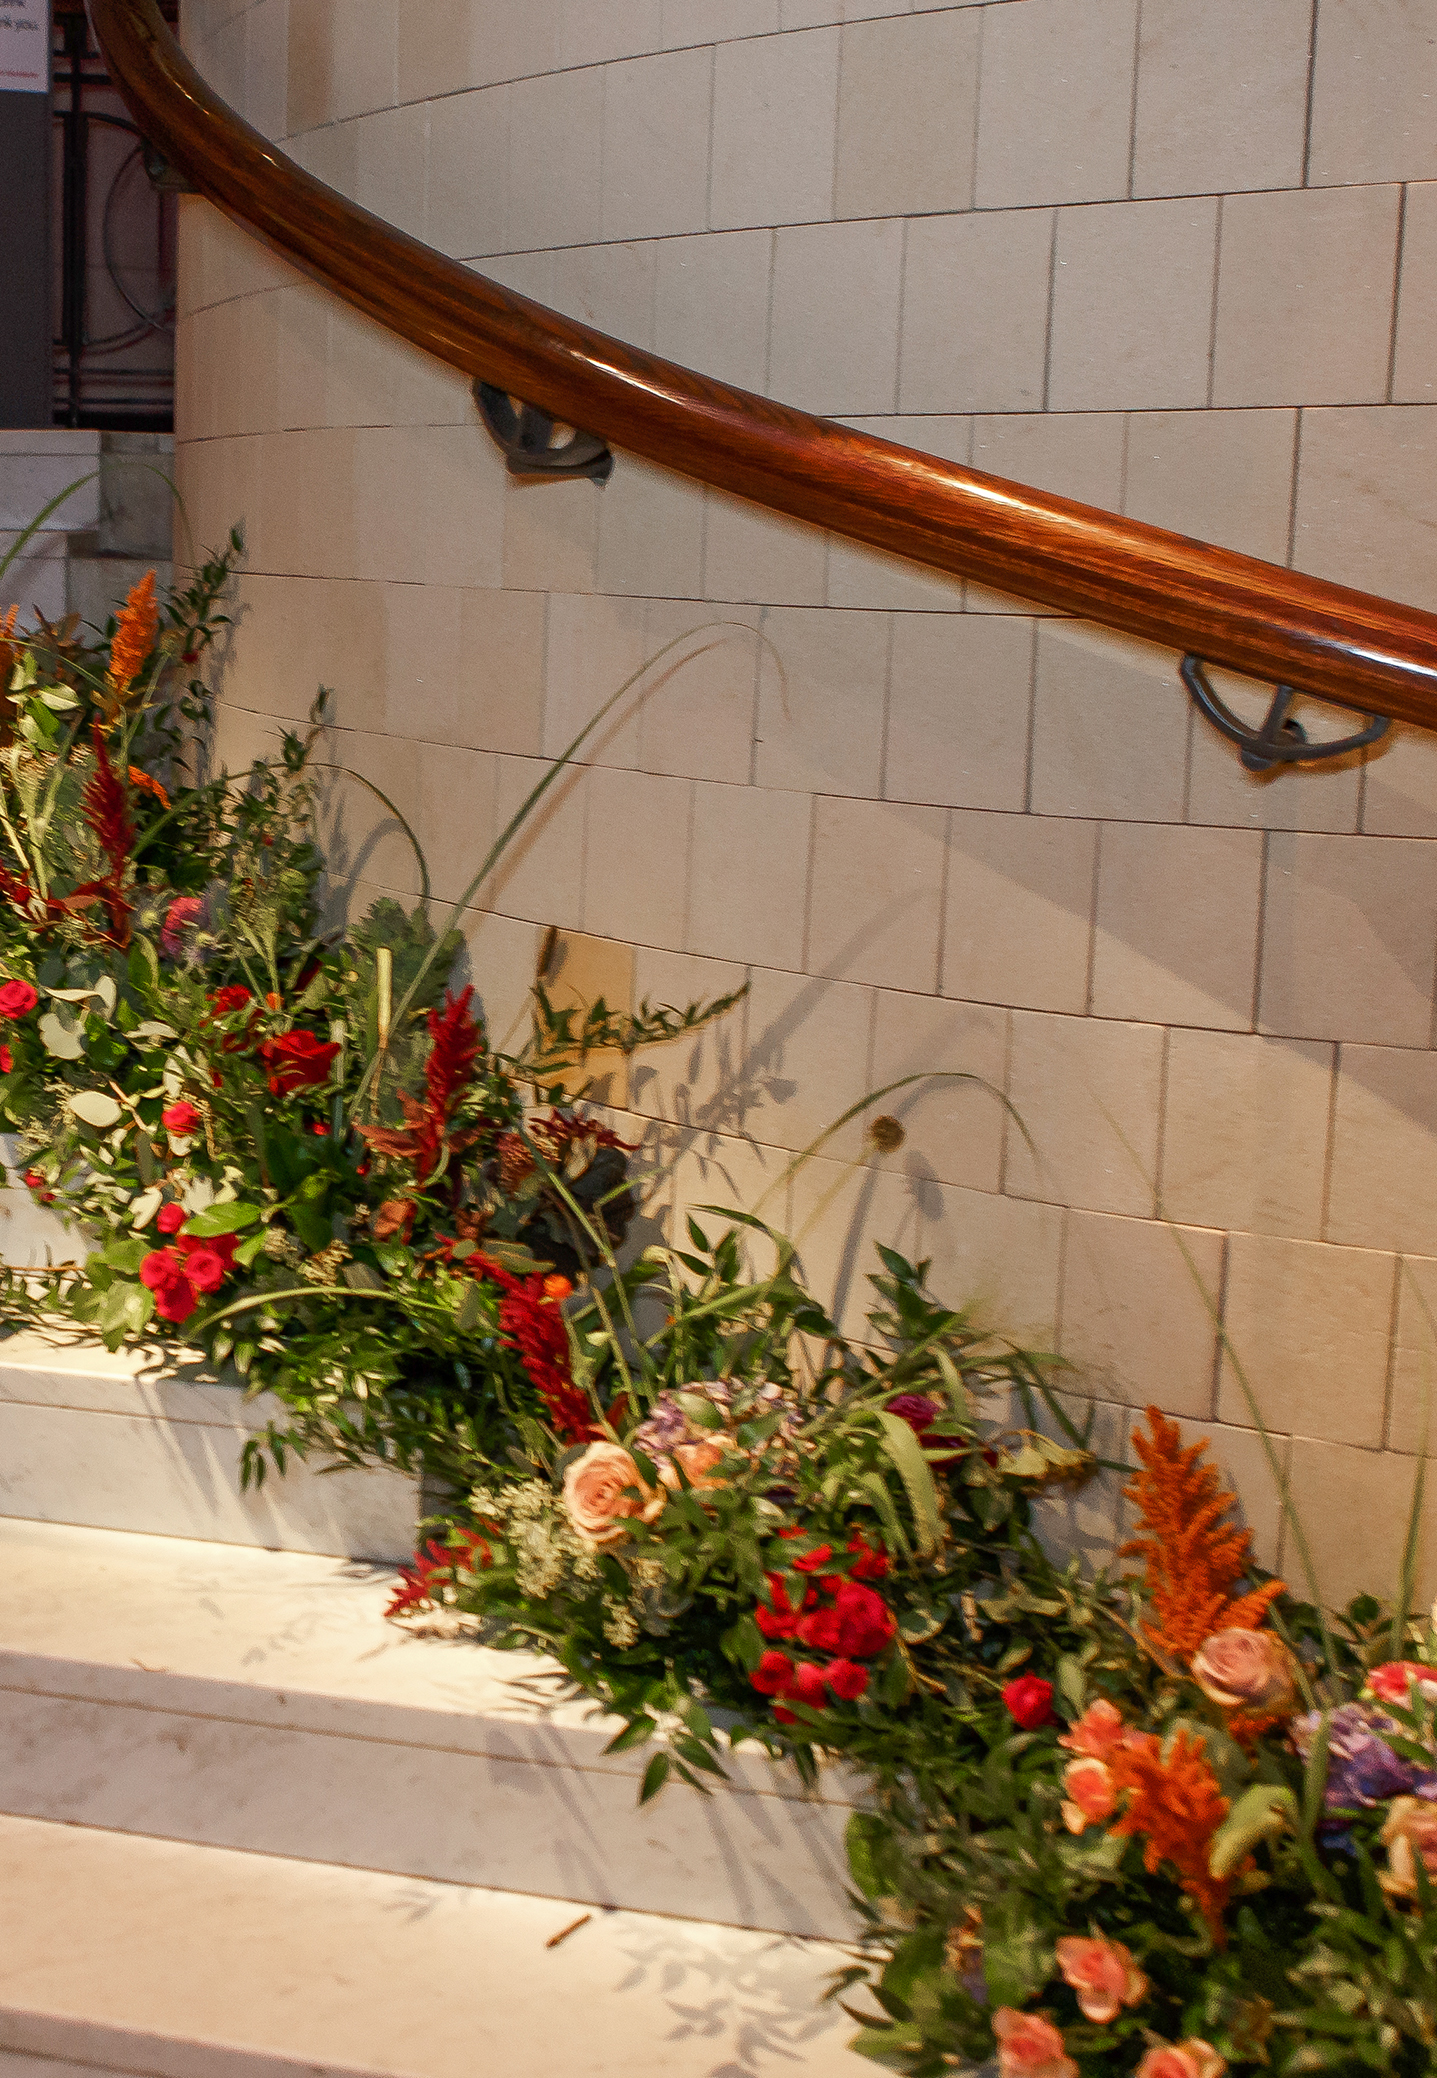 Garden stye natural floral arrangements in colorful autumn flowers lining the winding circular staircase in local wedding venue, the Cincinnati Art Museum.